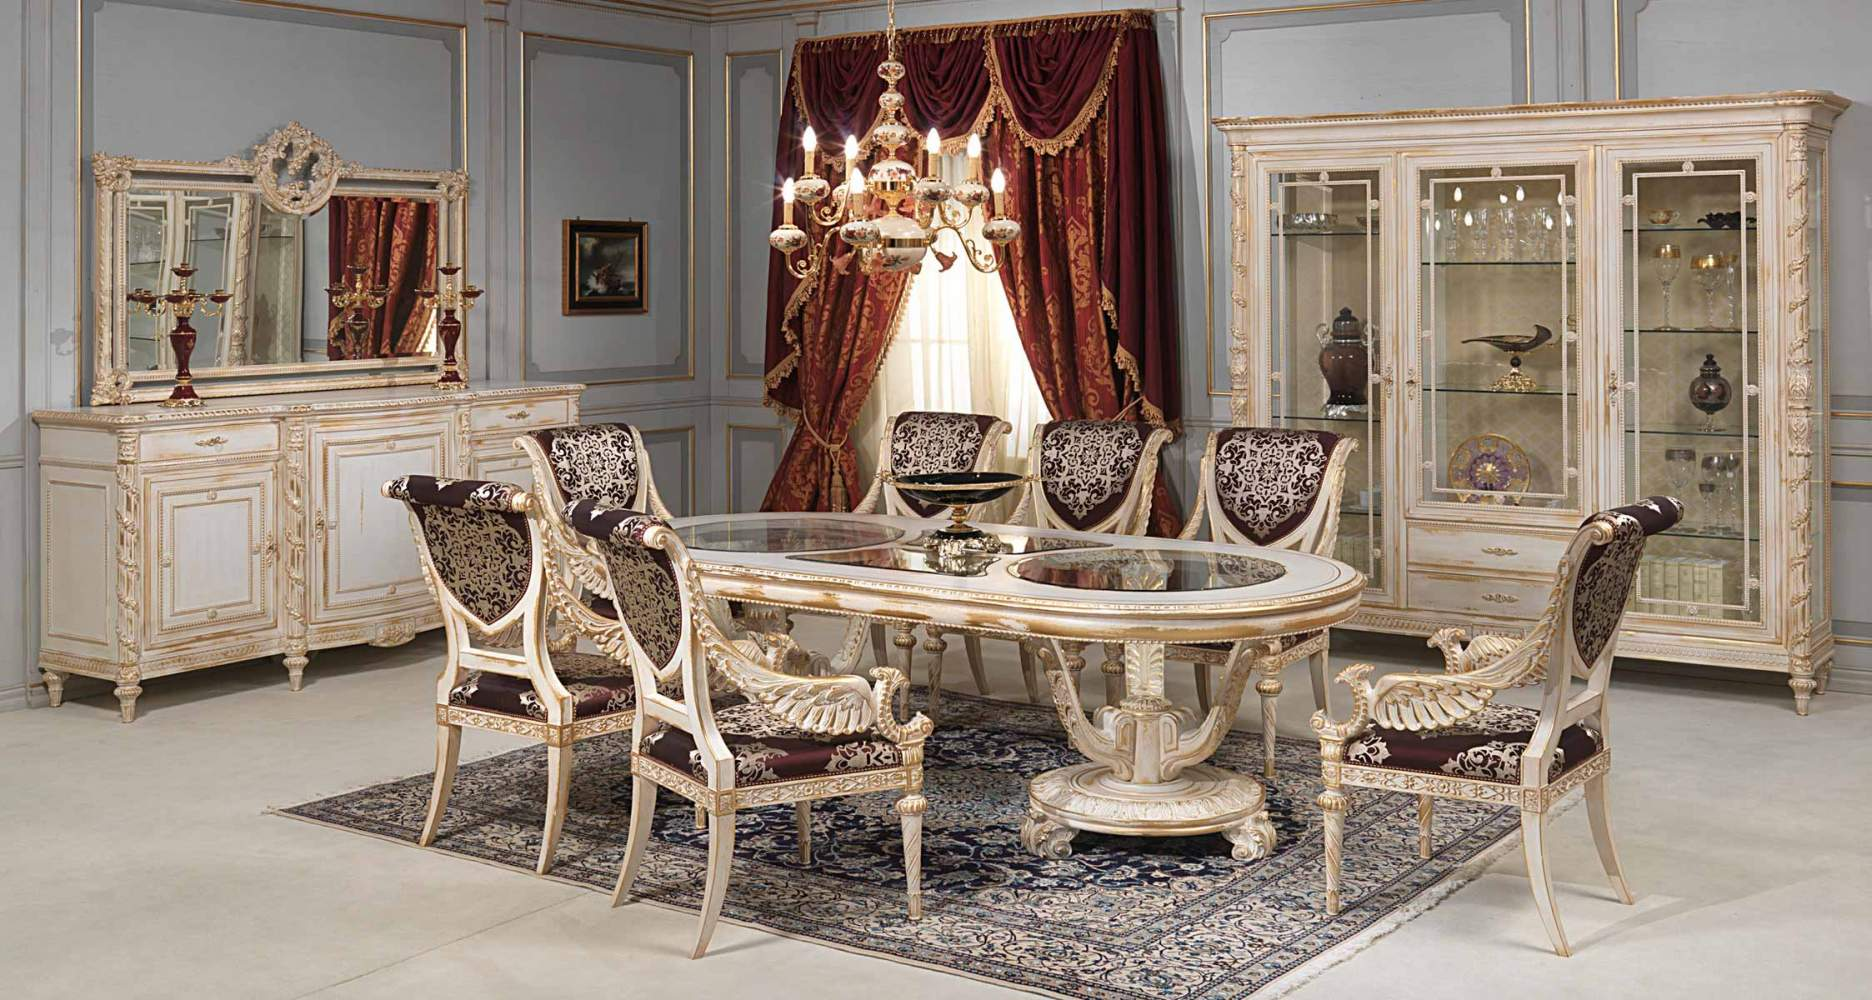 white and gold dining room in louis xvi style vimercati classic white and gold dining room in louis xvi style